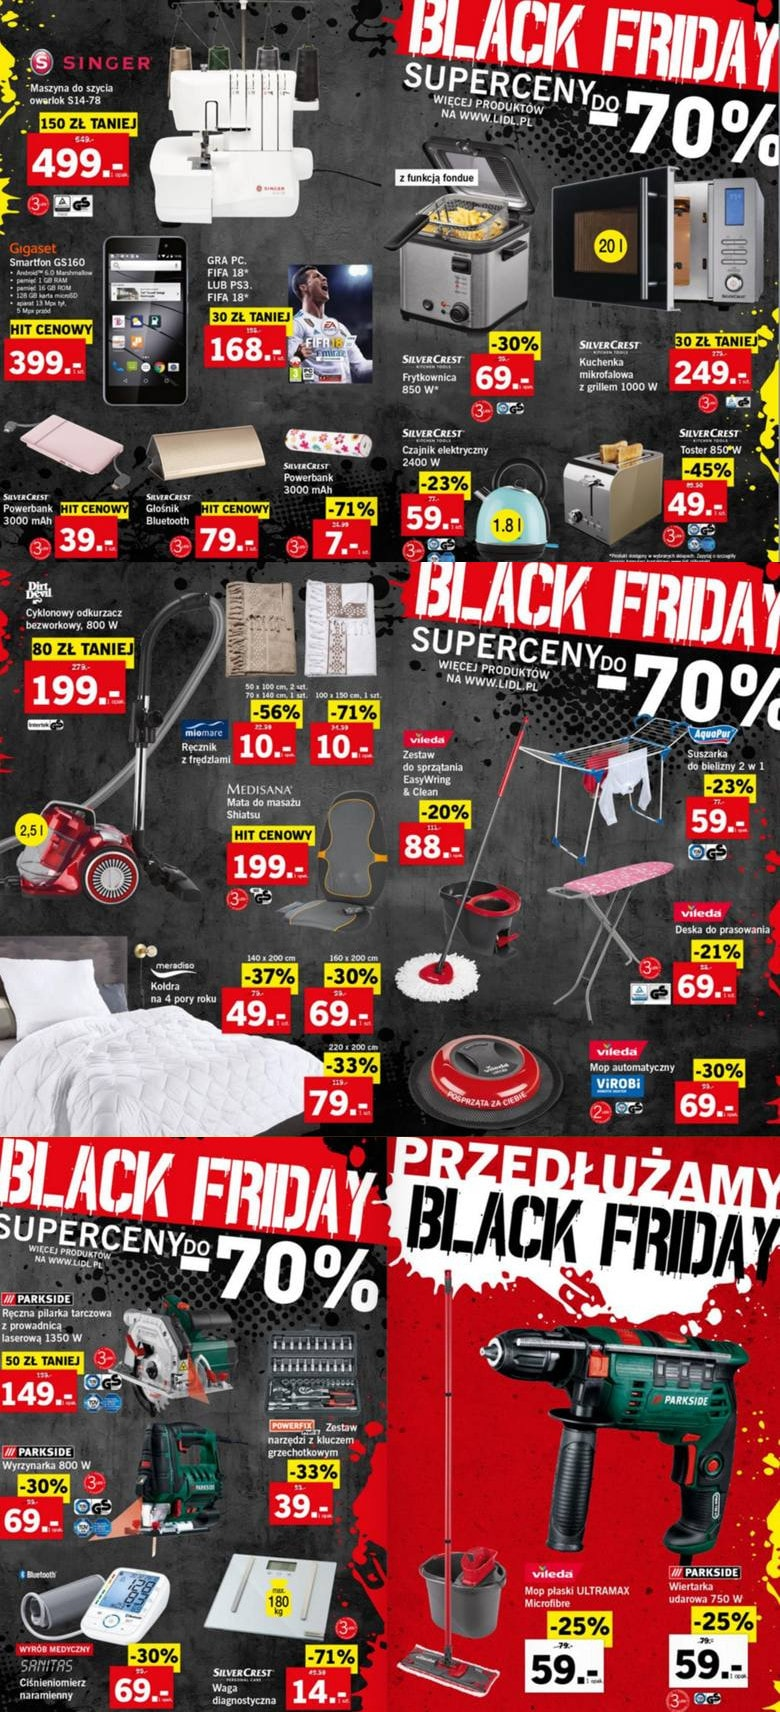 Black Friday 2017 sklepy